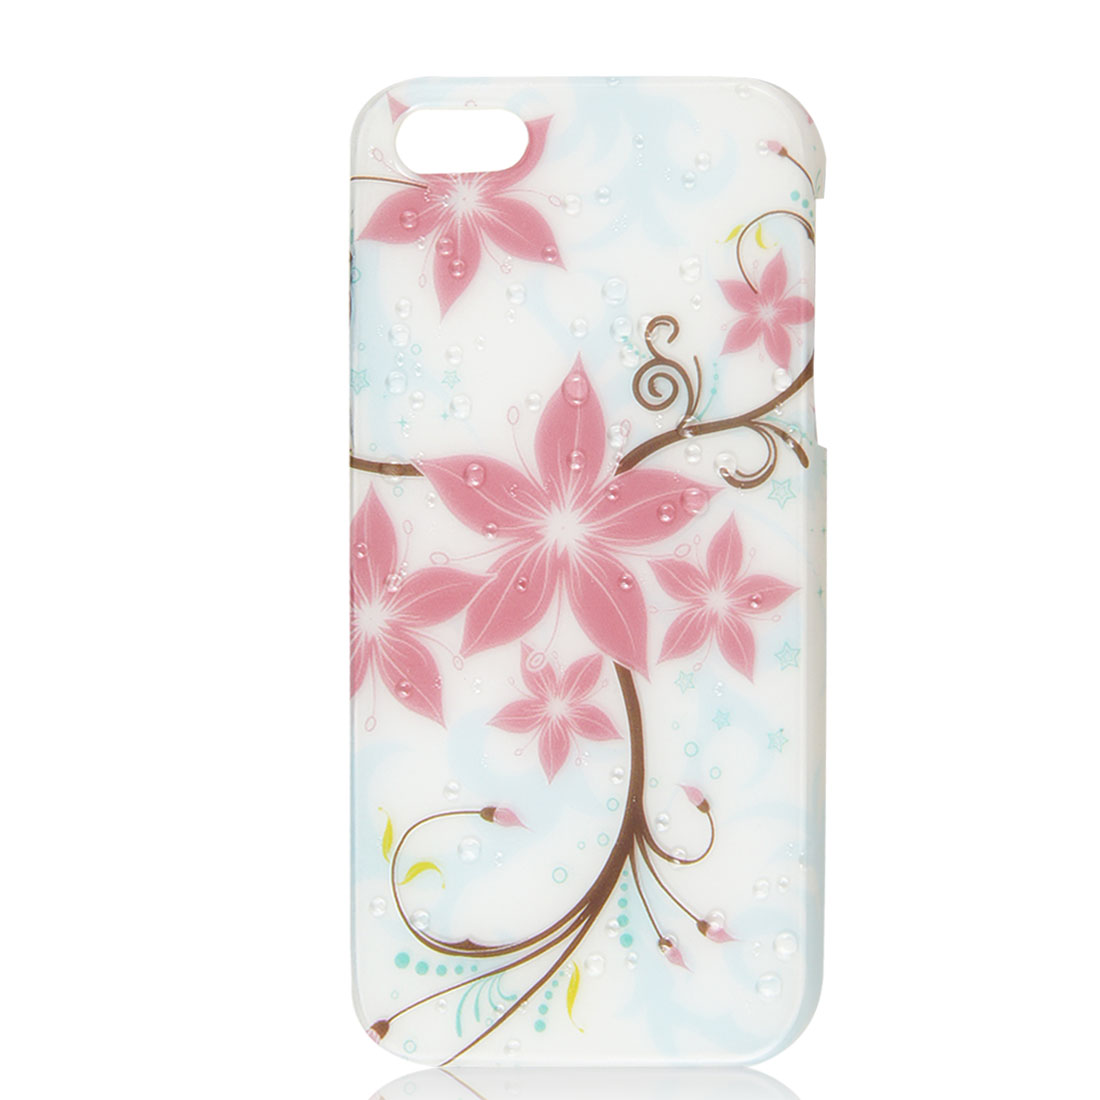 Light Pink Flower 3D Raindrop Hard Back Case Cover Skin for iPhone 5 5G